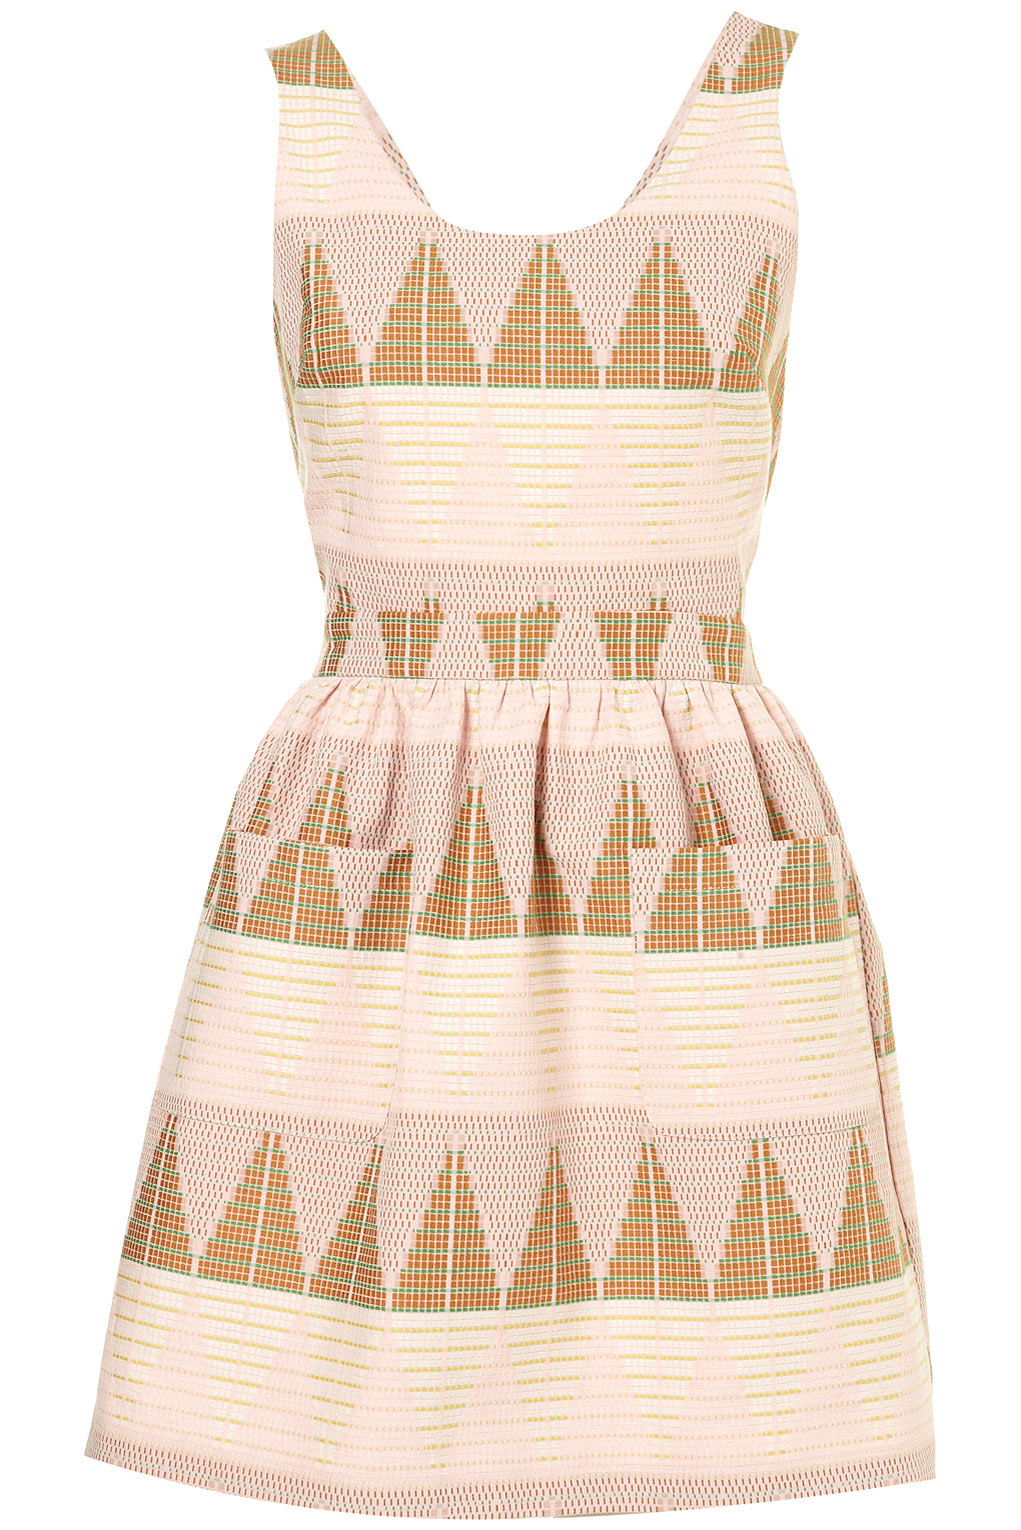 pennyblack_Lyst - Topshop Pastel Texture Pinafore Dress in Pink